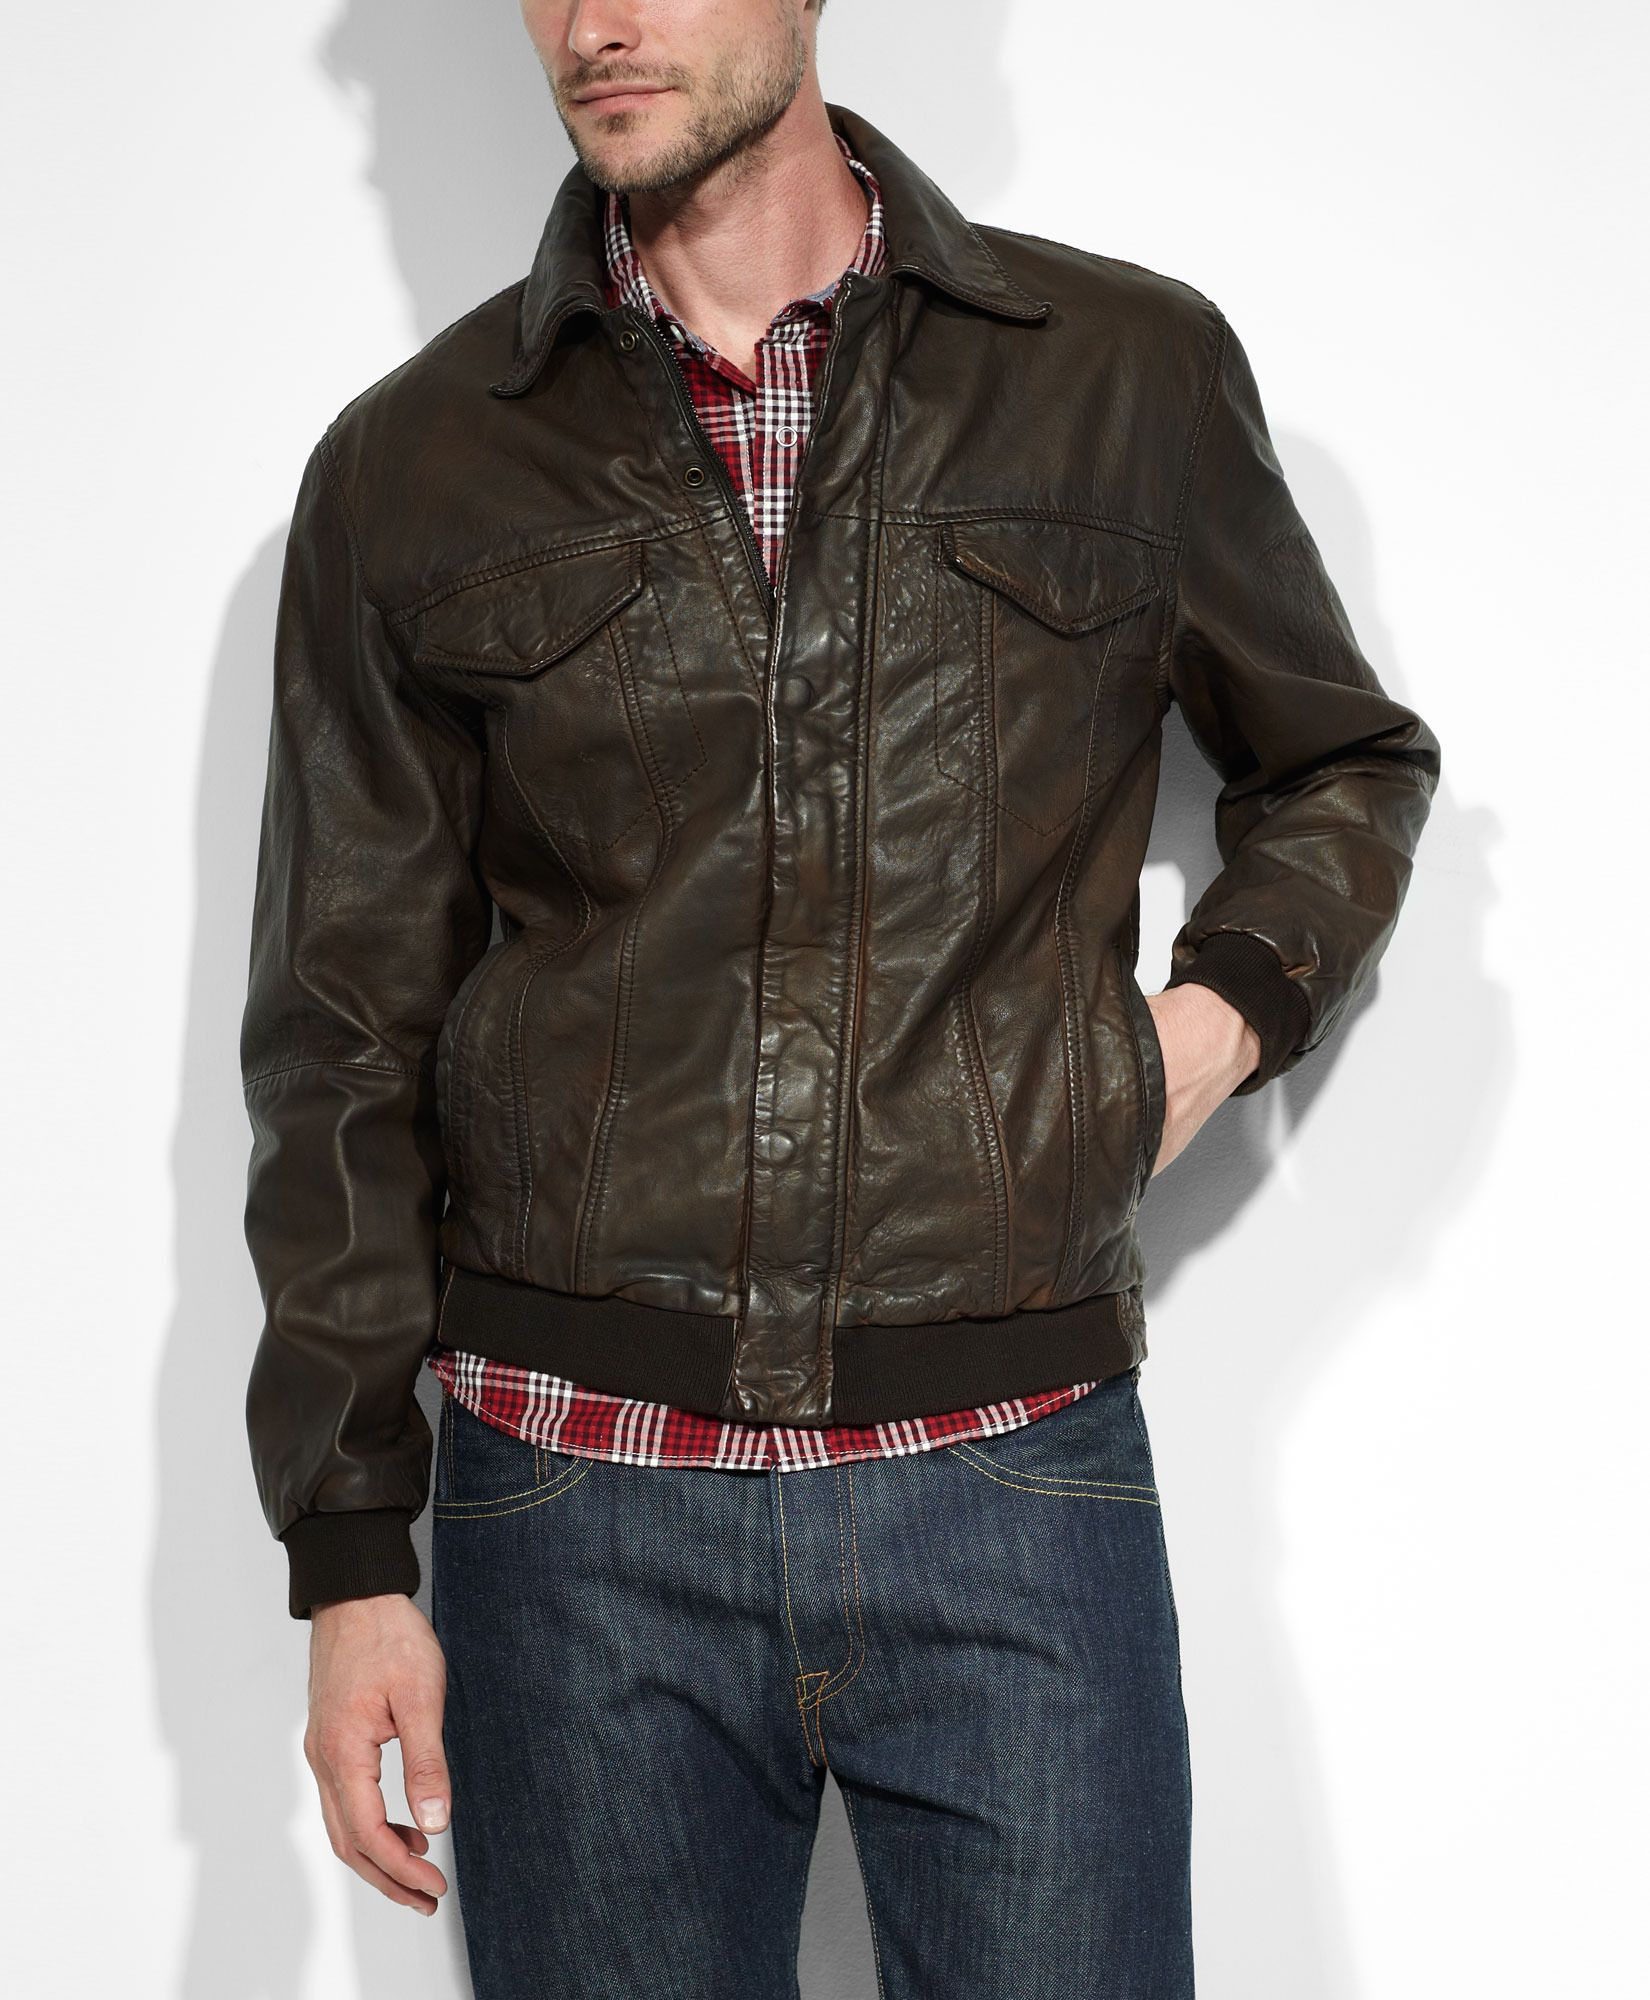 Levi's Leather Trucker Jacket Brown Jackets & Vests